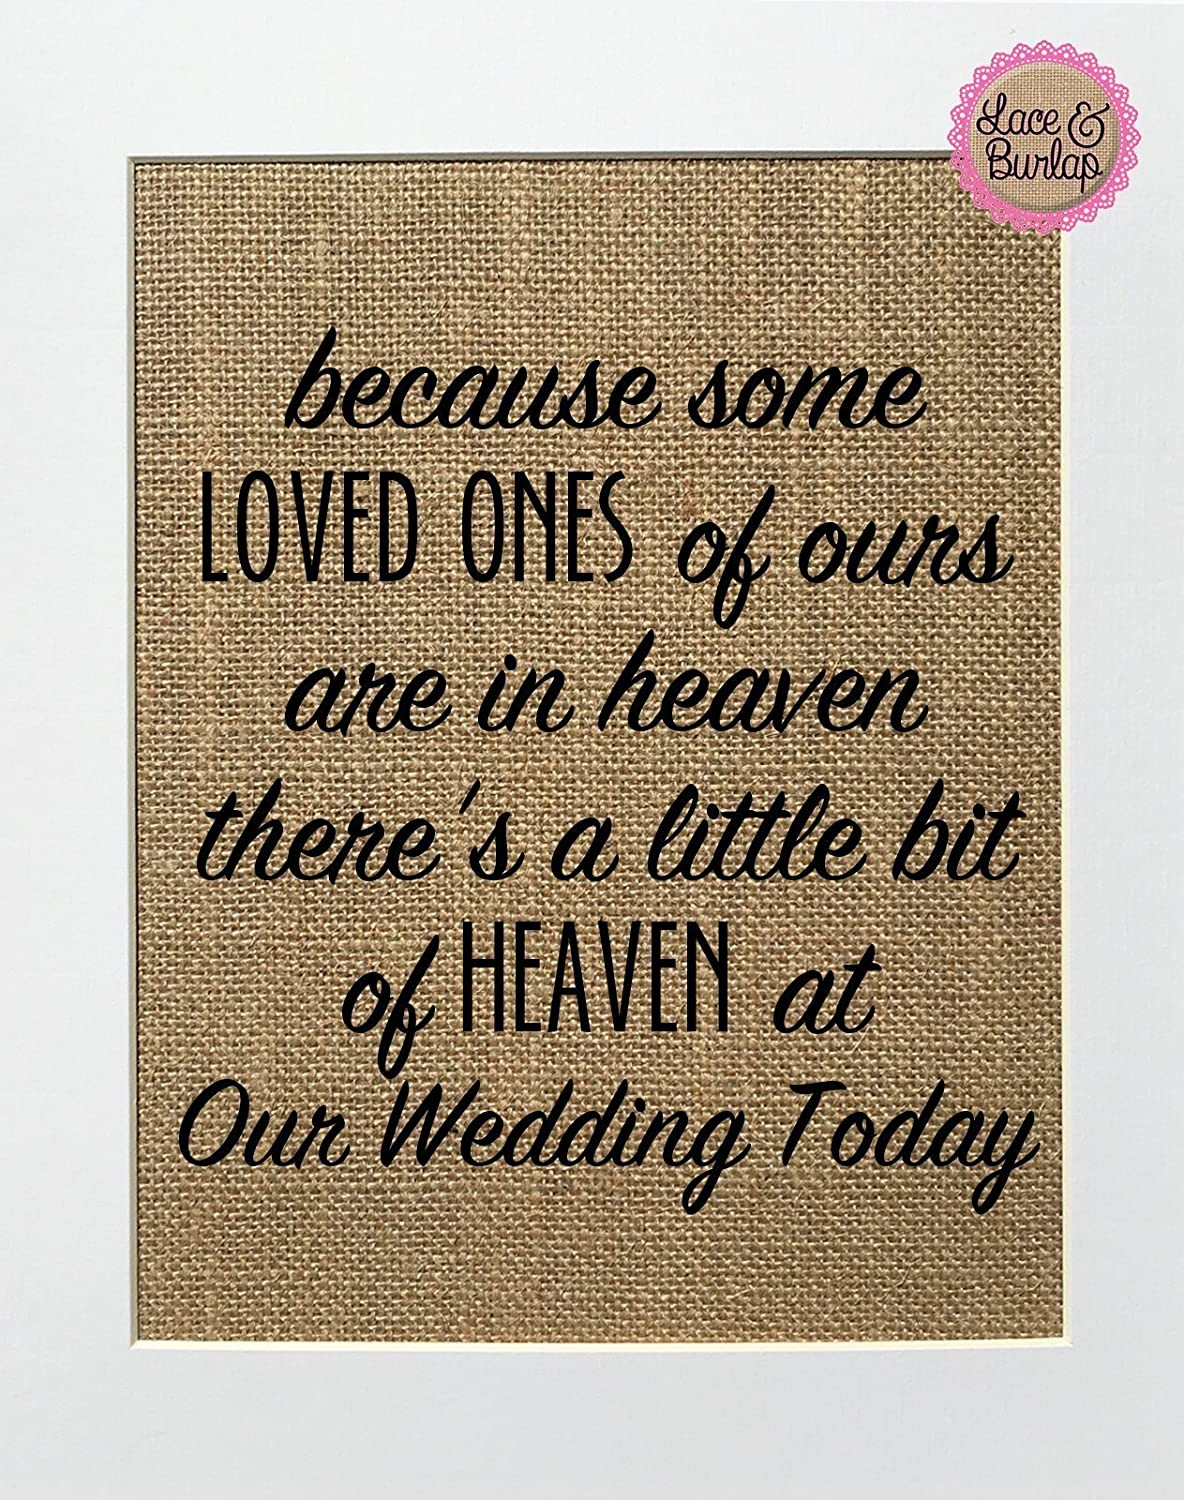 8x10 UNFRAMED Because Some Loved Ones of Ours are in Heaven There's a Little Bit of Heaven at Our Wedding Today / Burlap Print Sign / Rustic Shabby Chic Vintage Wedding Decor Sign